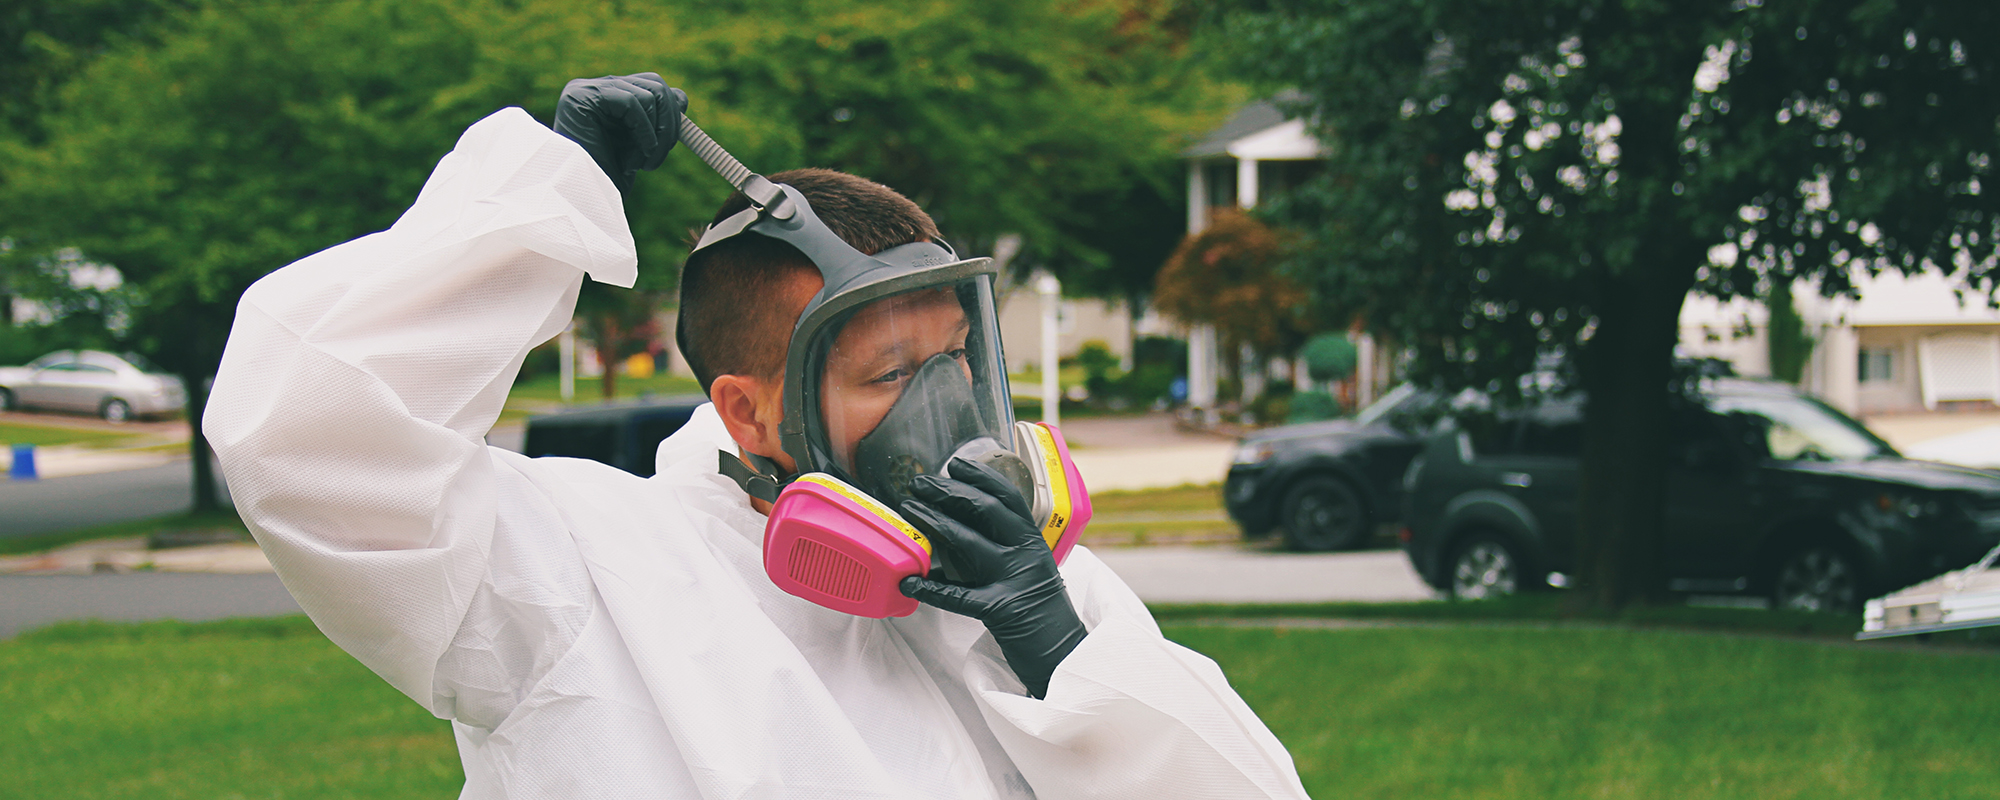 certified-mold-removal-professional-medford-nj